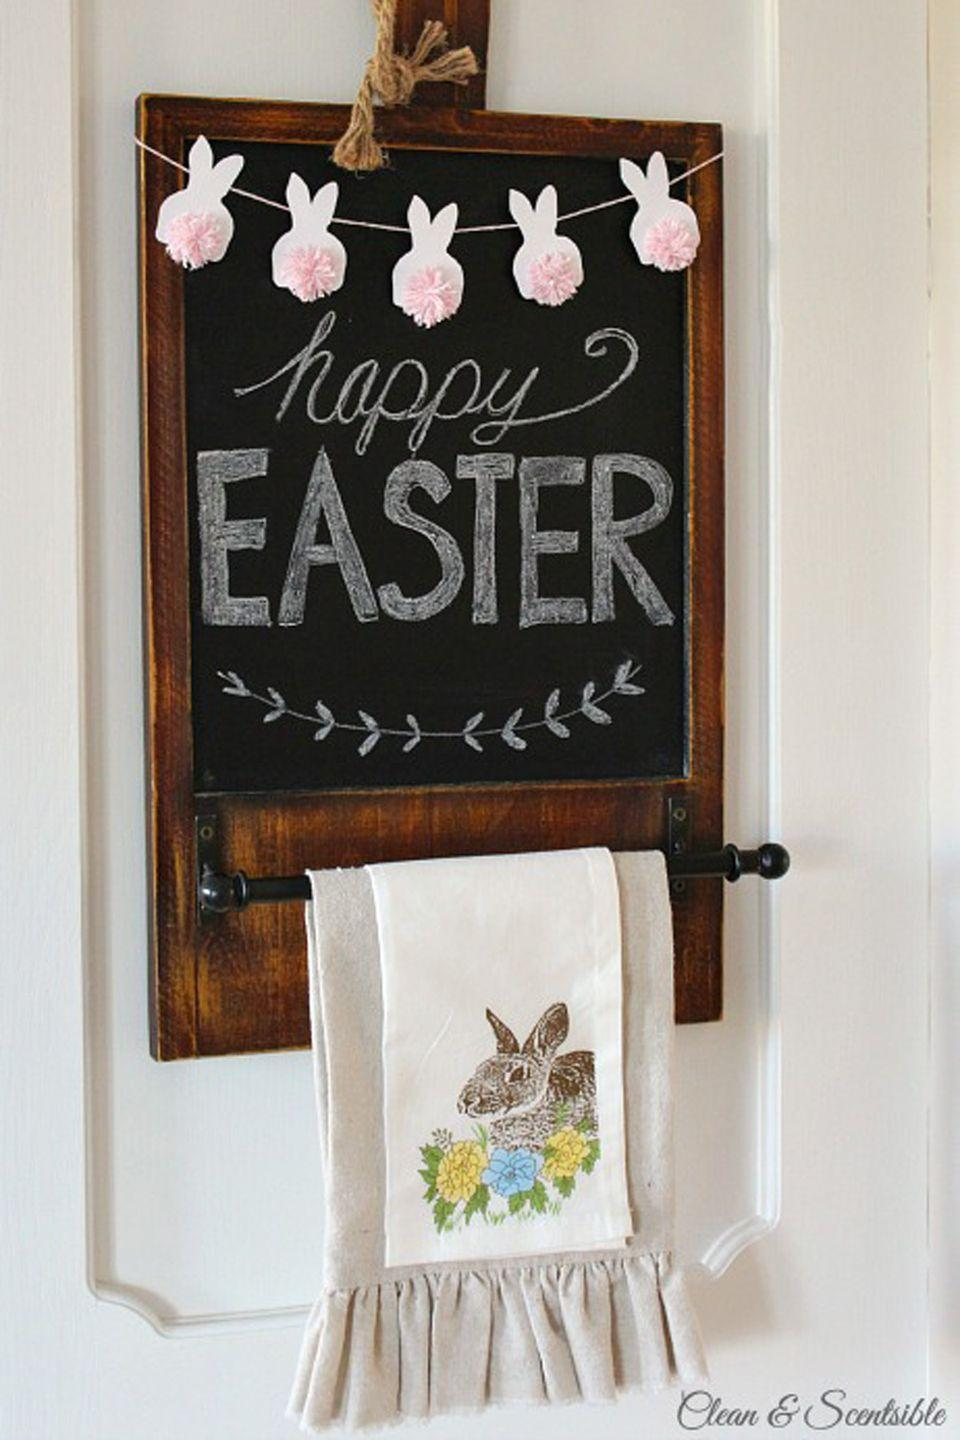 "<p>These teeny bunnies may seem like a small touch, but they make an adorable statement when they're strung together. </p><p><strong>Get the tutorial at <a href=""http://www.cleanandscentsible.com/2015/03/easter-mini-bunny-bunting.html"" rel=""nofollow noopener"" target=""_blank"" data-ylk=""slk:Clean and Scentsible"" class=""link rapid-noclick-resp"">Clean and Scentsible</a>.</strong></p><p><a class=""link rapid-noclick-resp"" href=""https://www.amazon.com/Lion-Brand-Yarn-215-140-Feels/dp/B079P99STM/ref=sr_1_2?tag=syn-yahoo-20&ascsubtag=%5Bartid%7C10050.g.1652%5Bsrc%7Cyahoo-us"" rel=""nofollow noopener"" target=""_blank"" data-ylk=""slk:SHOP PINK YARN"">SHOP PINK YARN</a></p>"